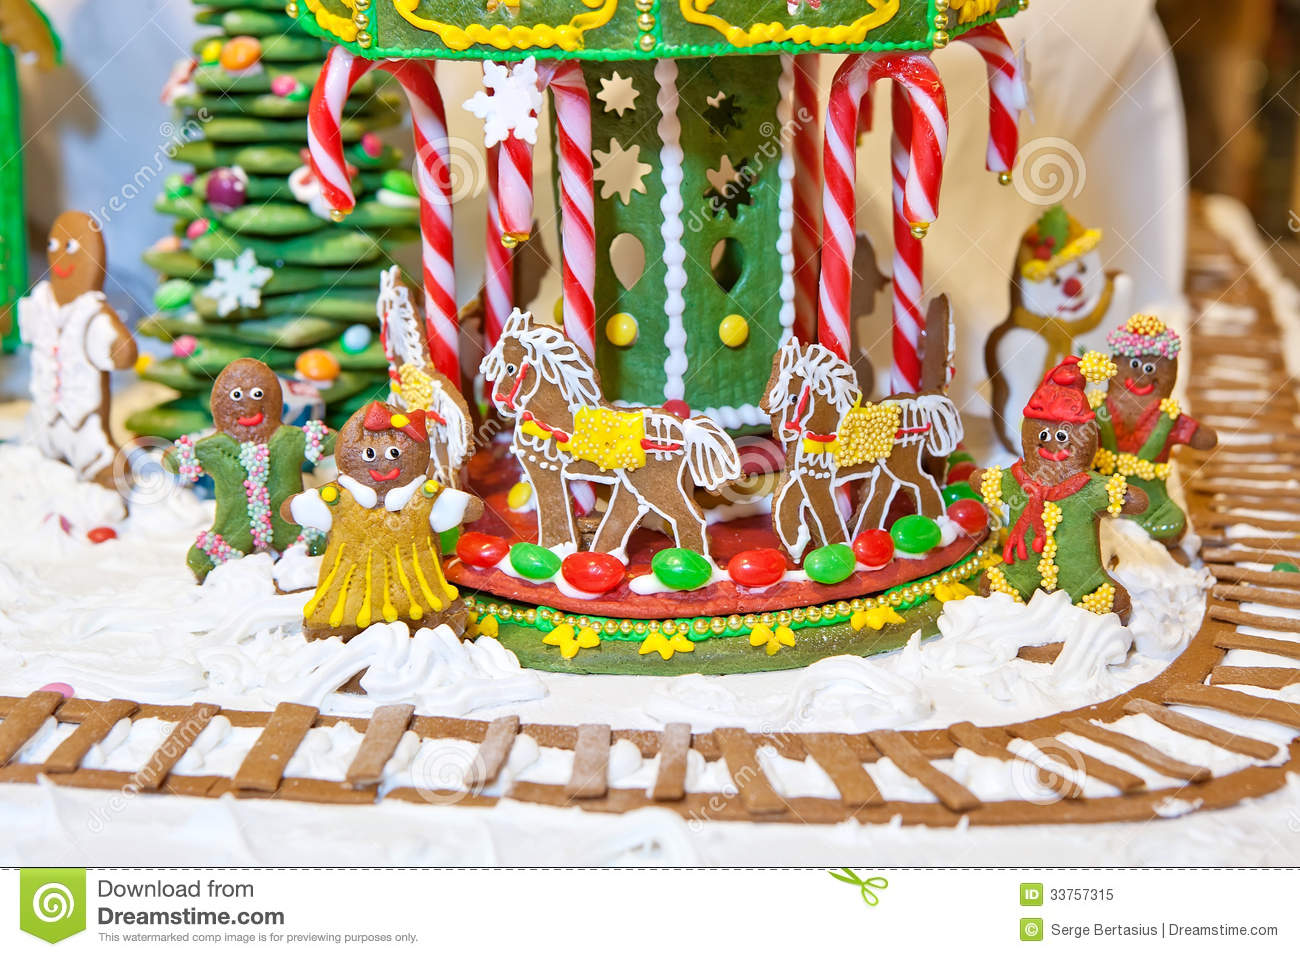 christmas gingerbread decoration - Christmas Carousel Decoration